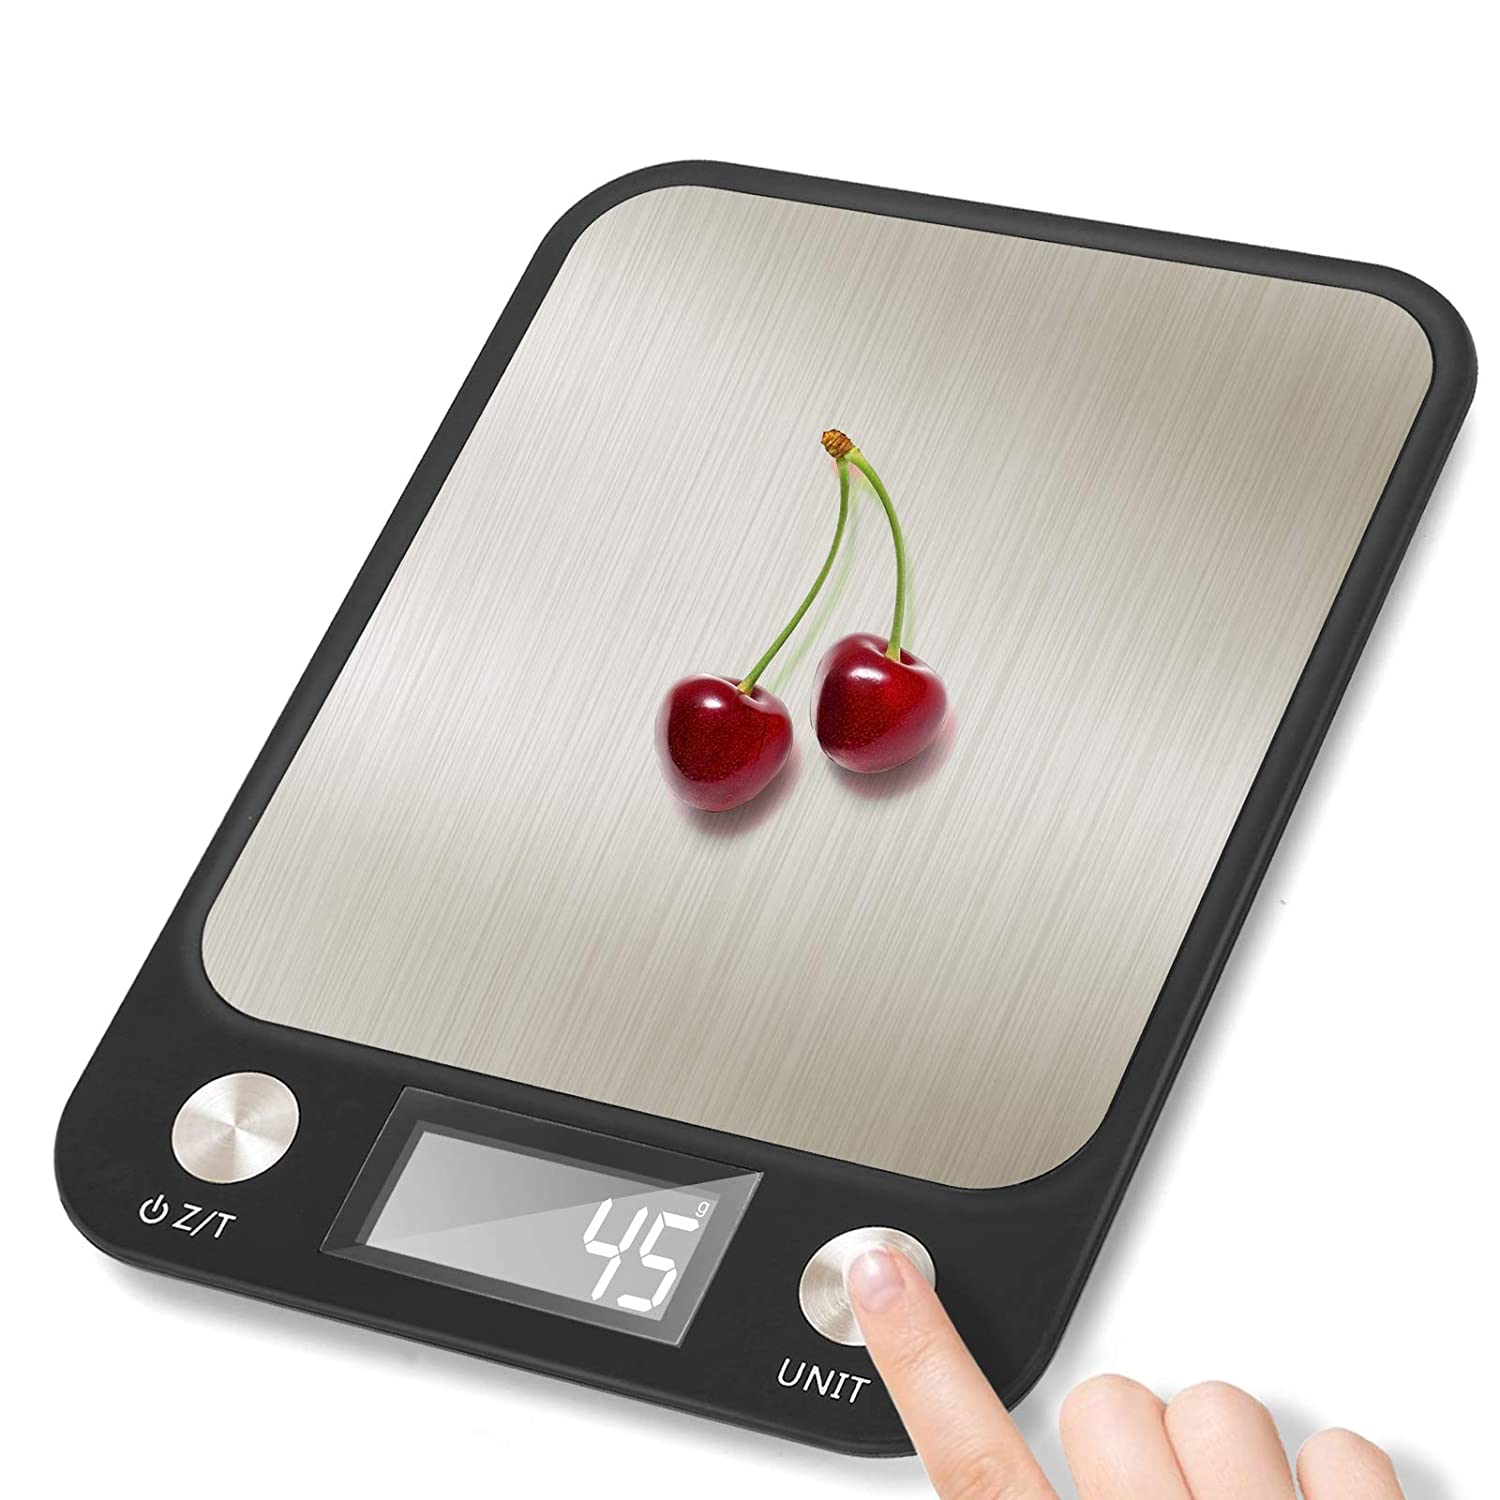 Waterproof Electronic Scale for Food Baking Shipping (0.1g - 10kg) Multifunction Kitchen Scale Small Light Digital Scale for Package Diet Scales Digital Weight